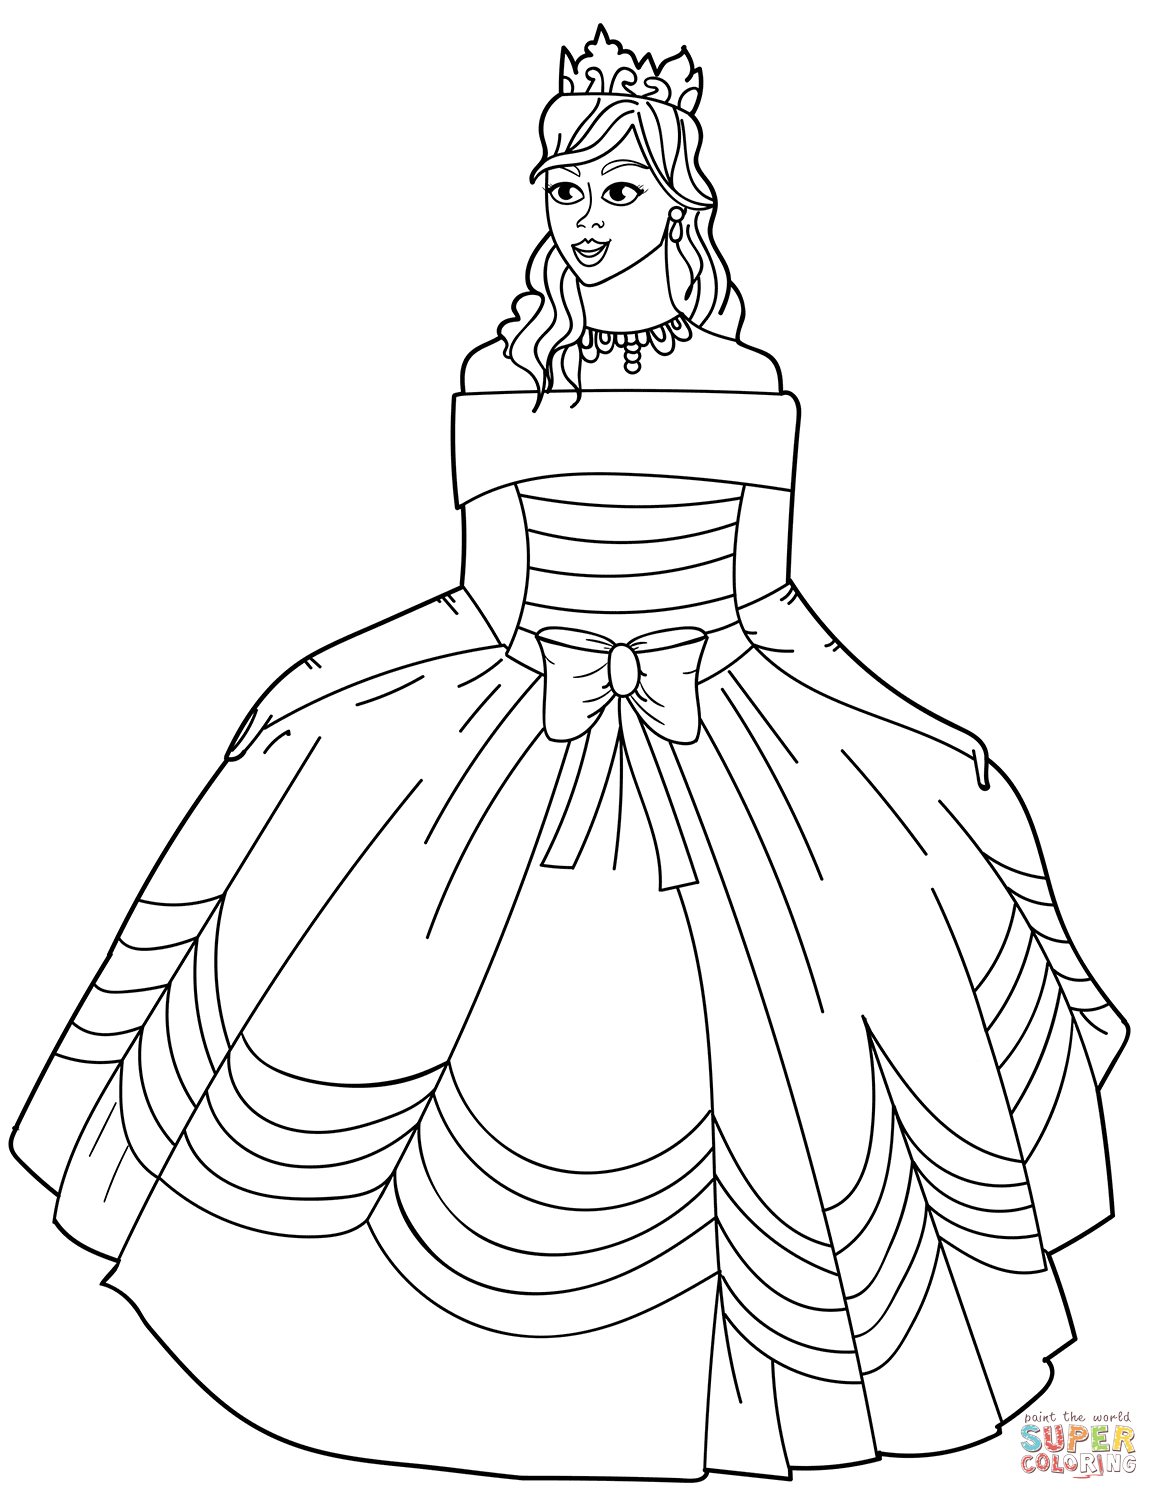 free dress coloring pages dress coloring pages to download and print for free pages coloring dress free